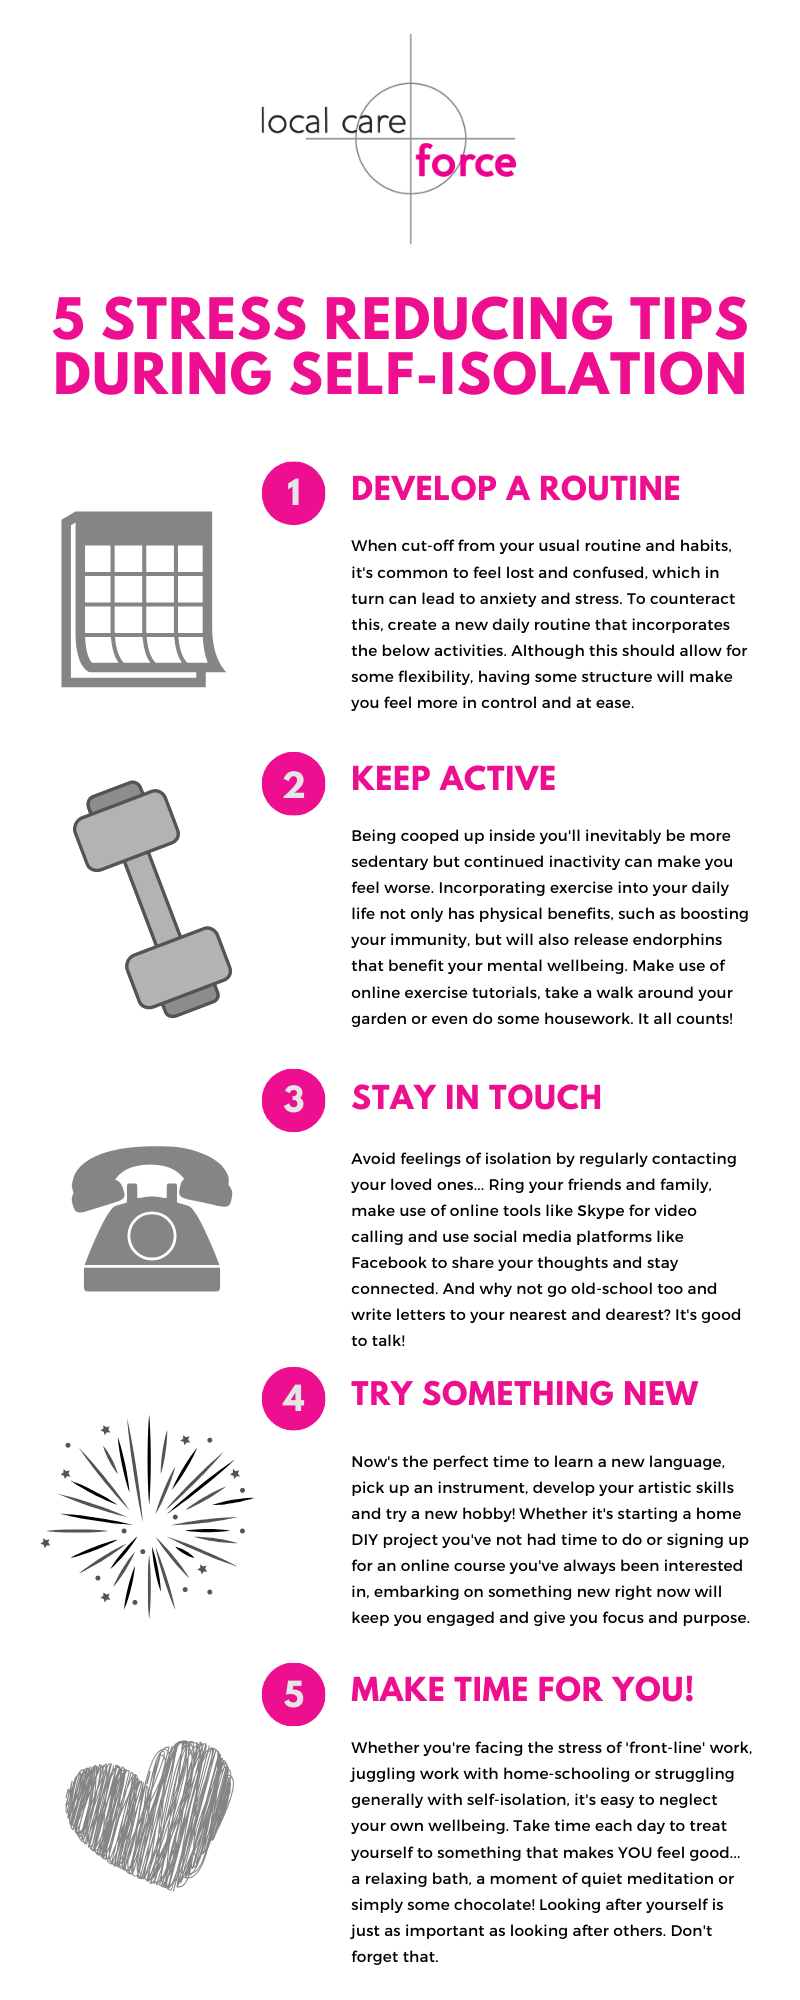 self isolation stress tips infographic-2